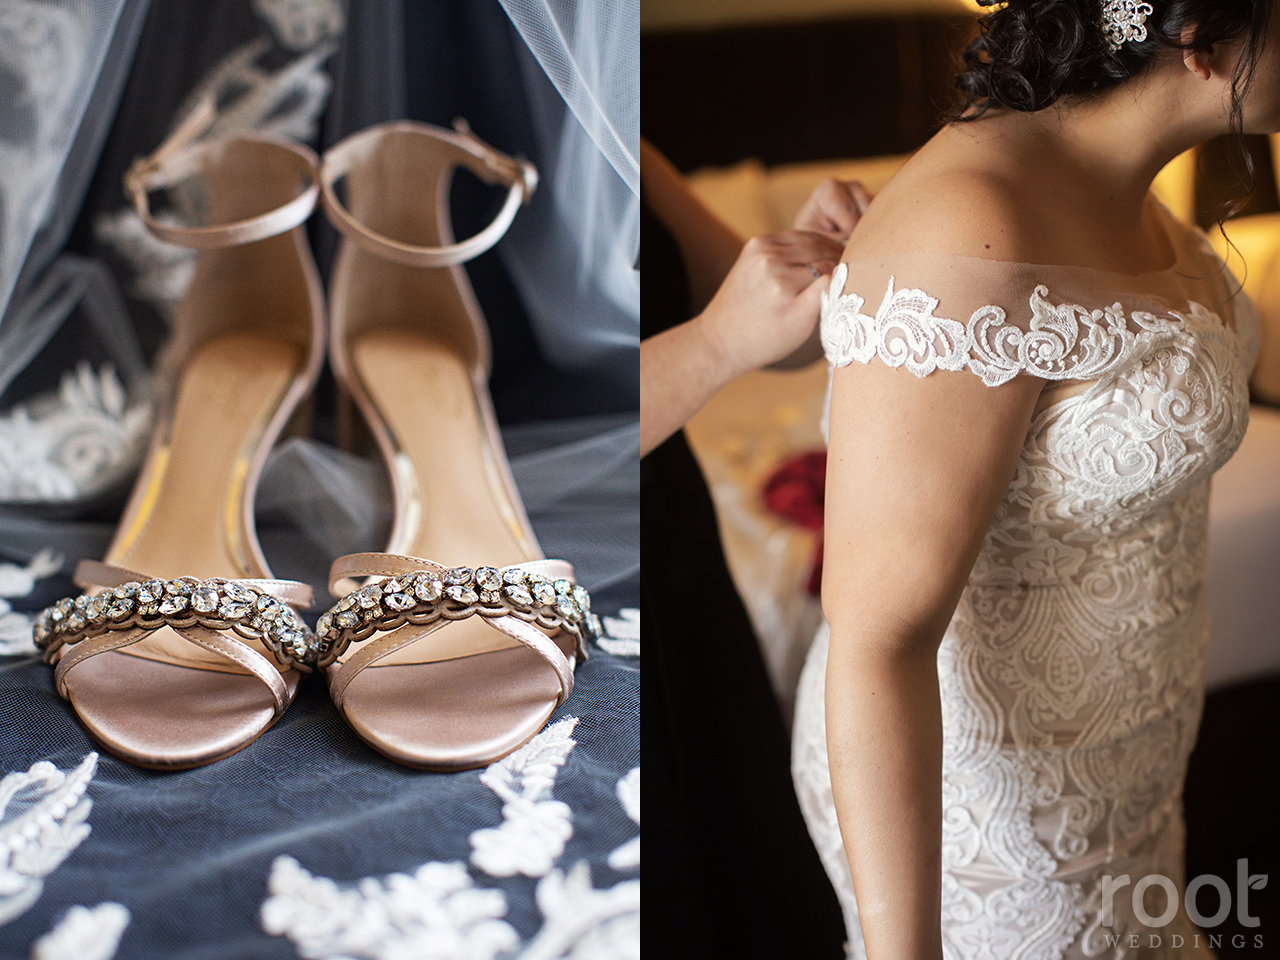 Beaded high heels and lace wedding dress sleeve